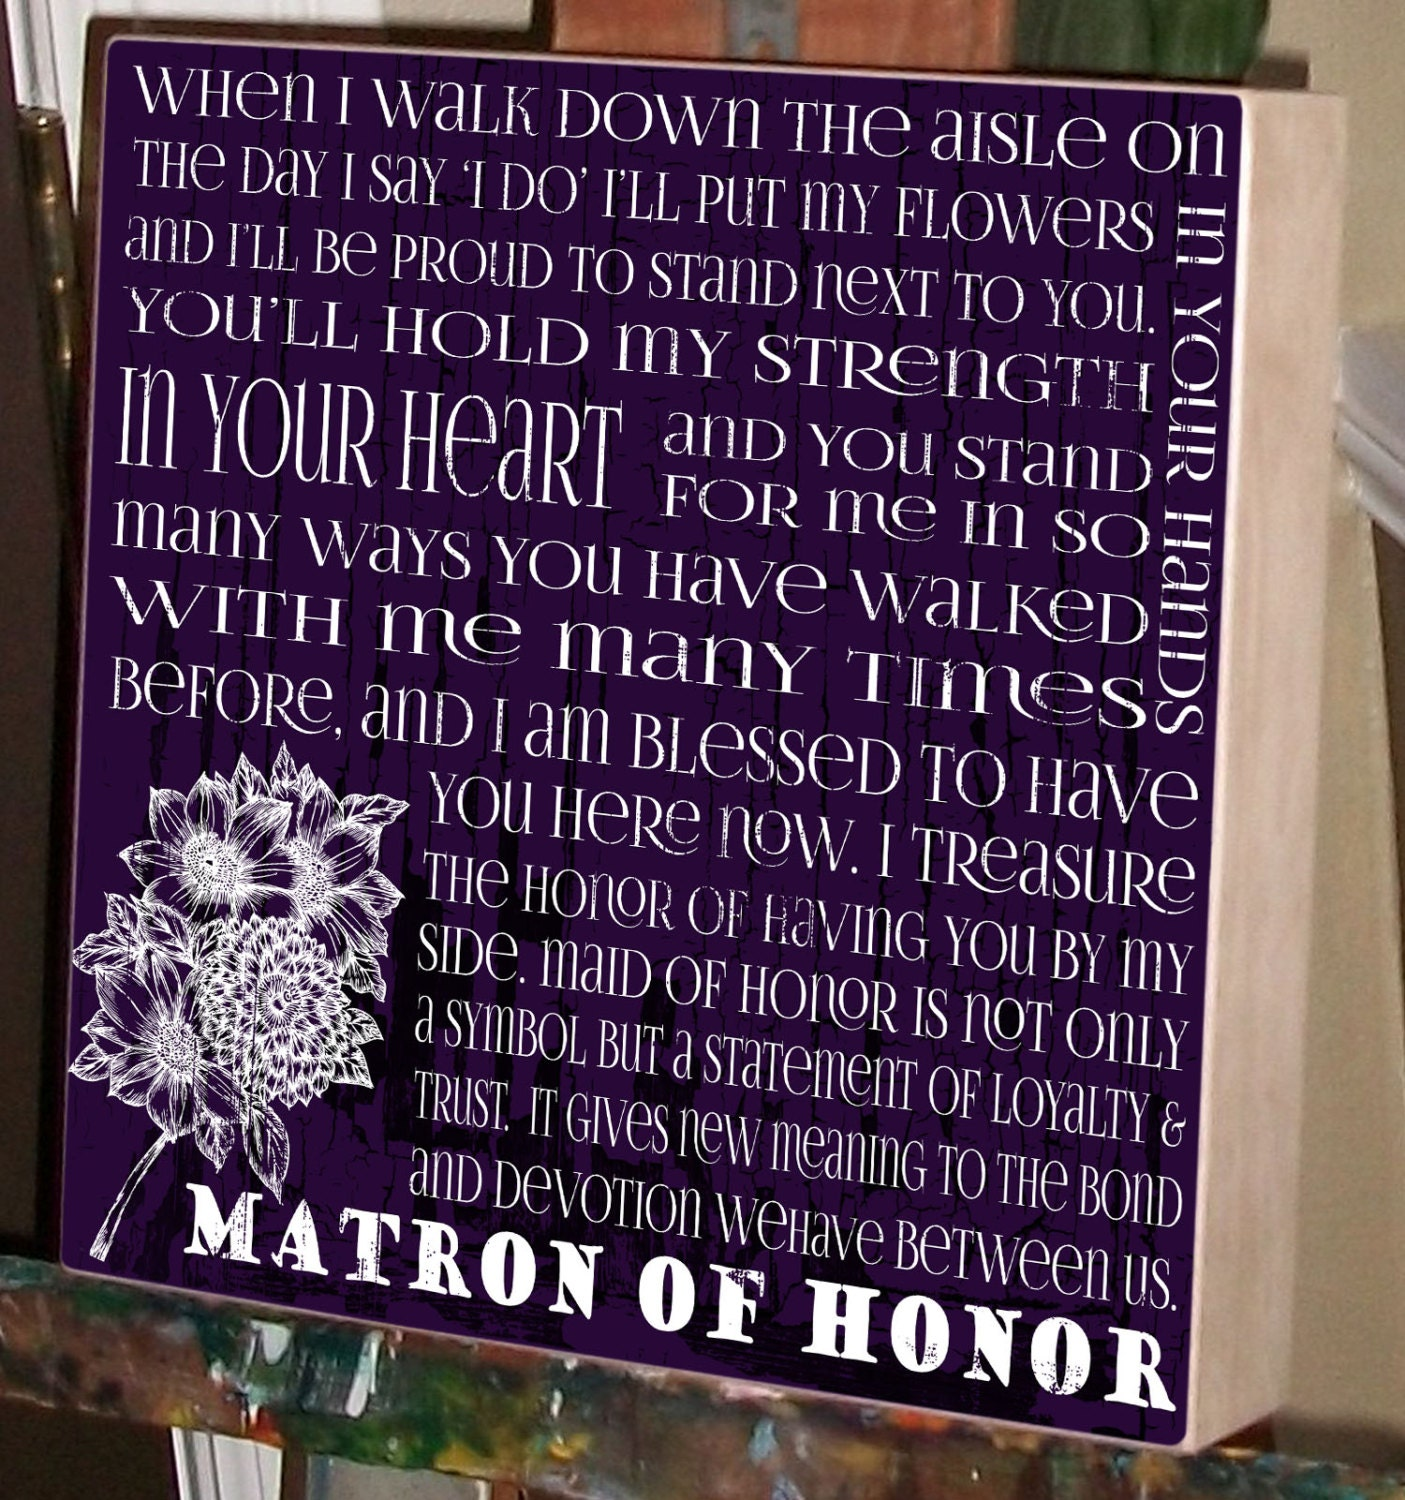 Wedding Gift For Bride From Maid Of Honor : Maid of Honor, Bridal Party, Matron of Honor, Wedding Gift ...